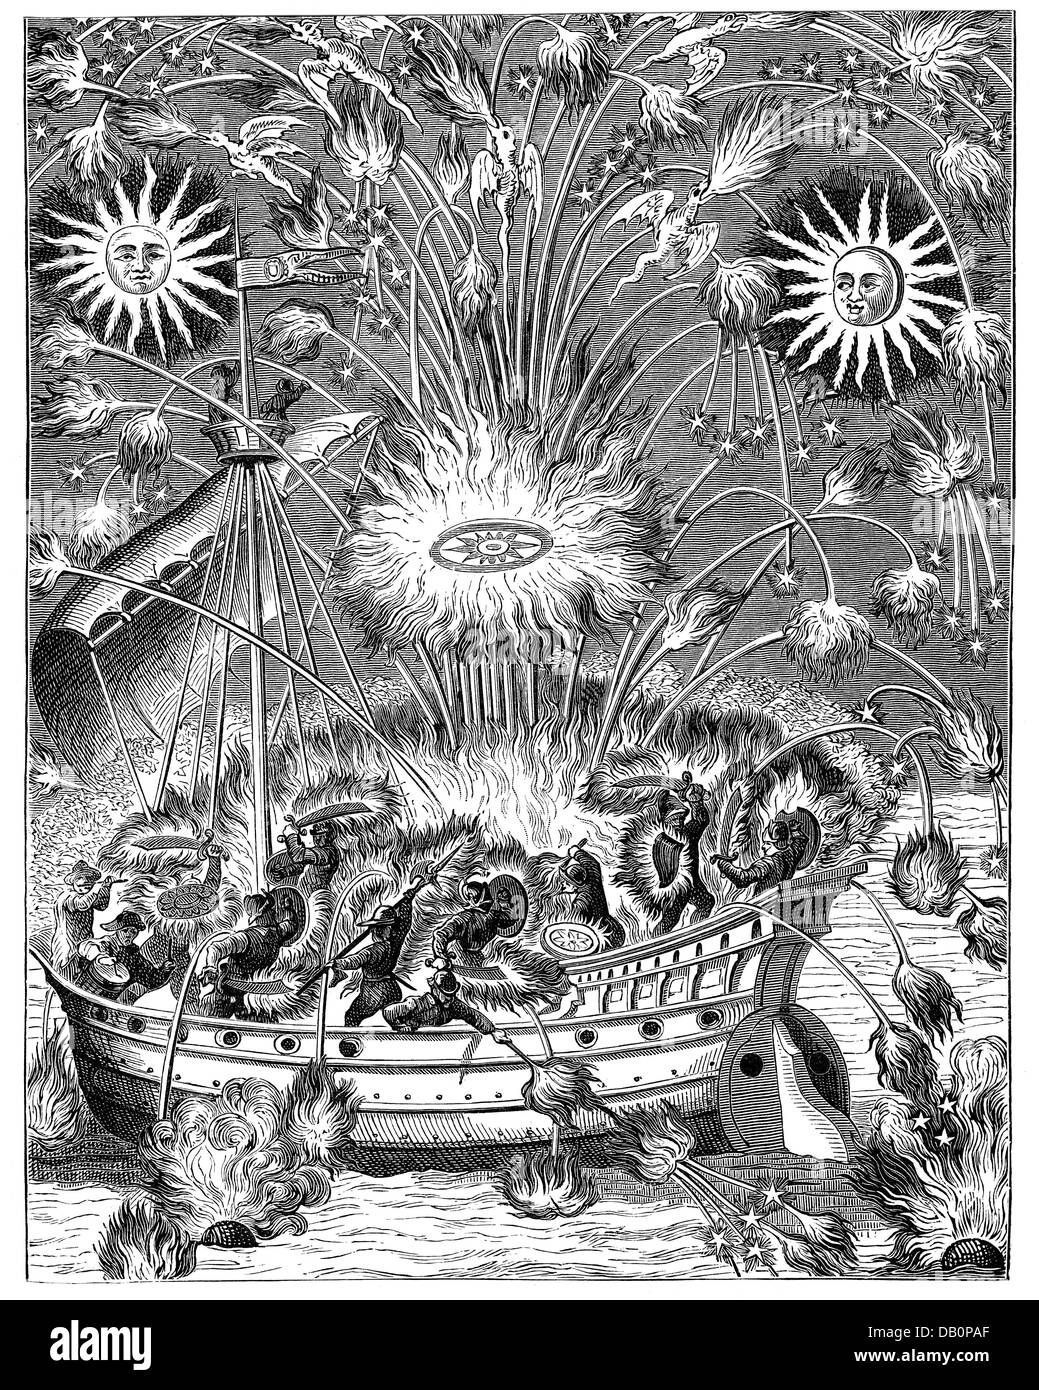 festivities, fireworks, water fireworks, girandole between two suns, imagination of a naval battle, copper engraving, - Stock Image